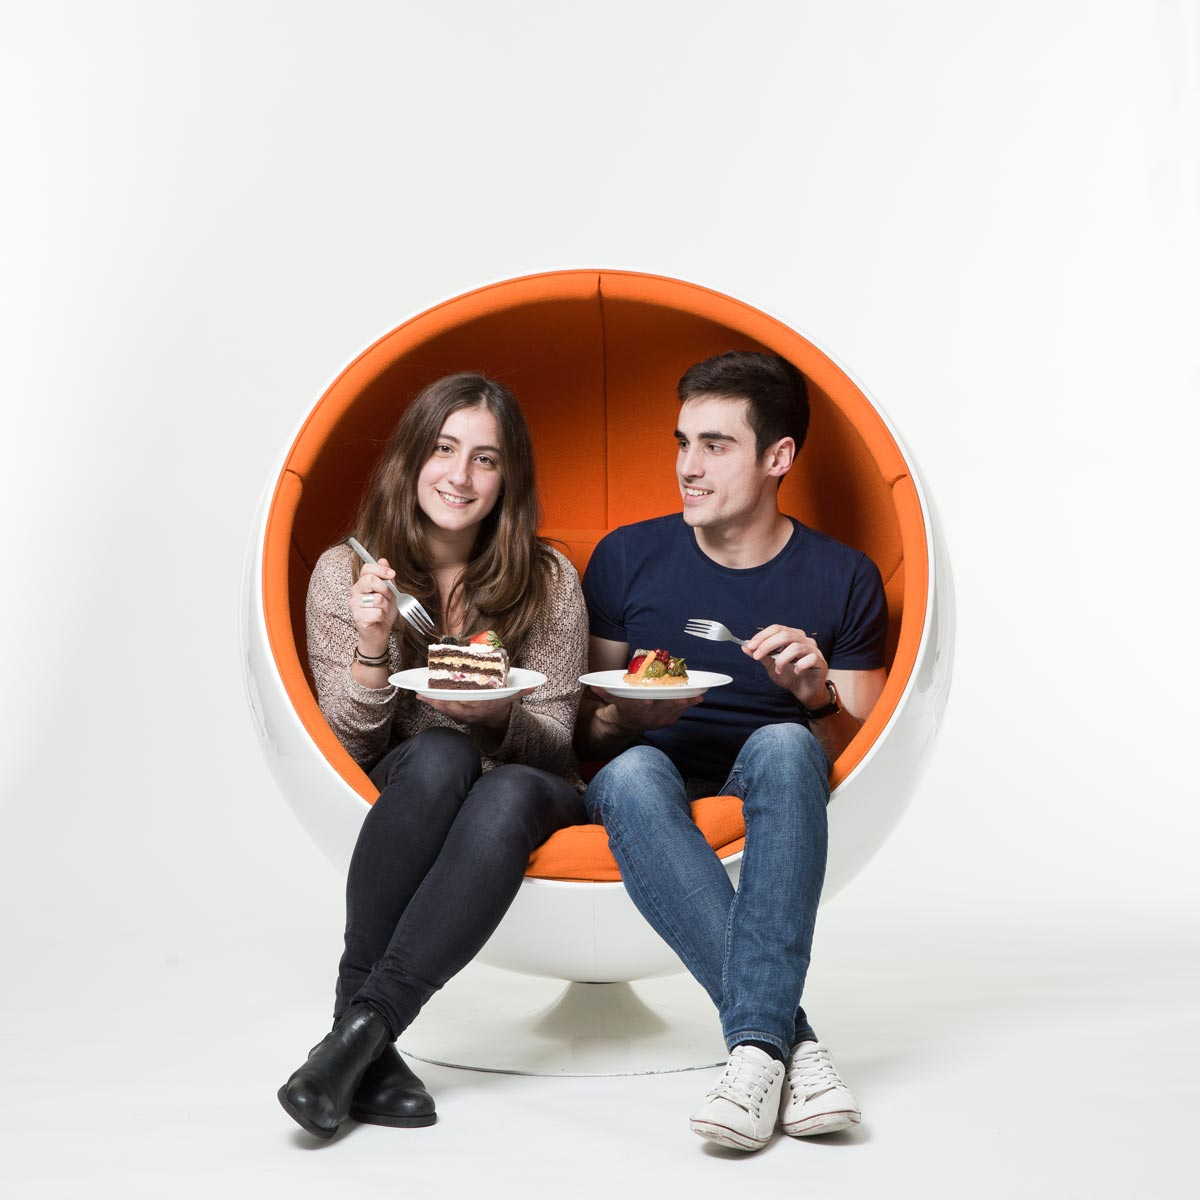 Two people sitting in orange chair